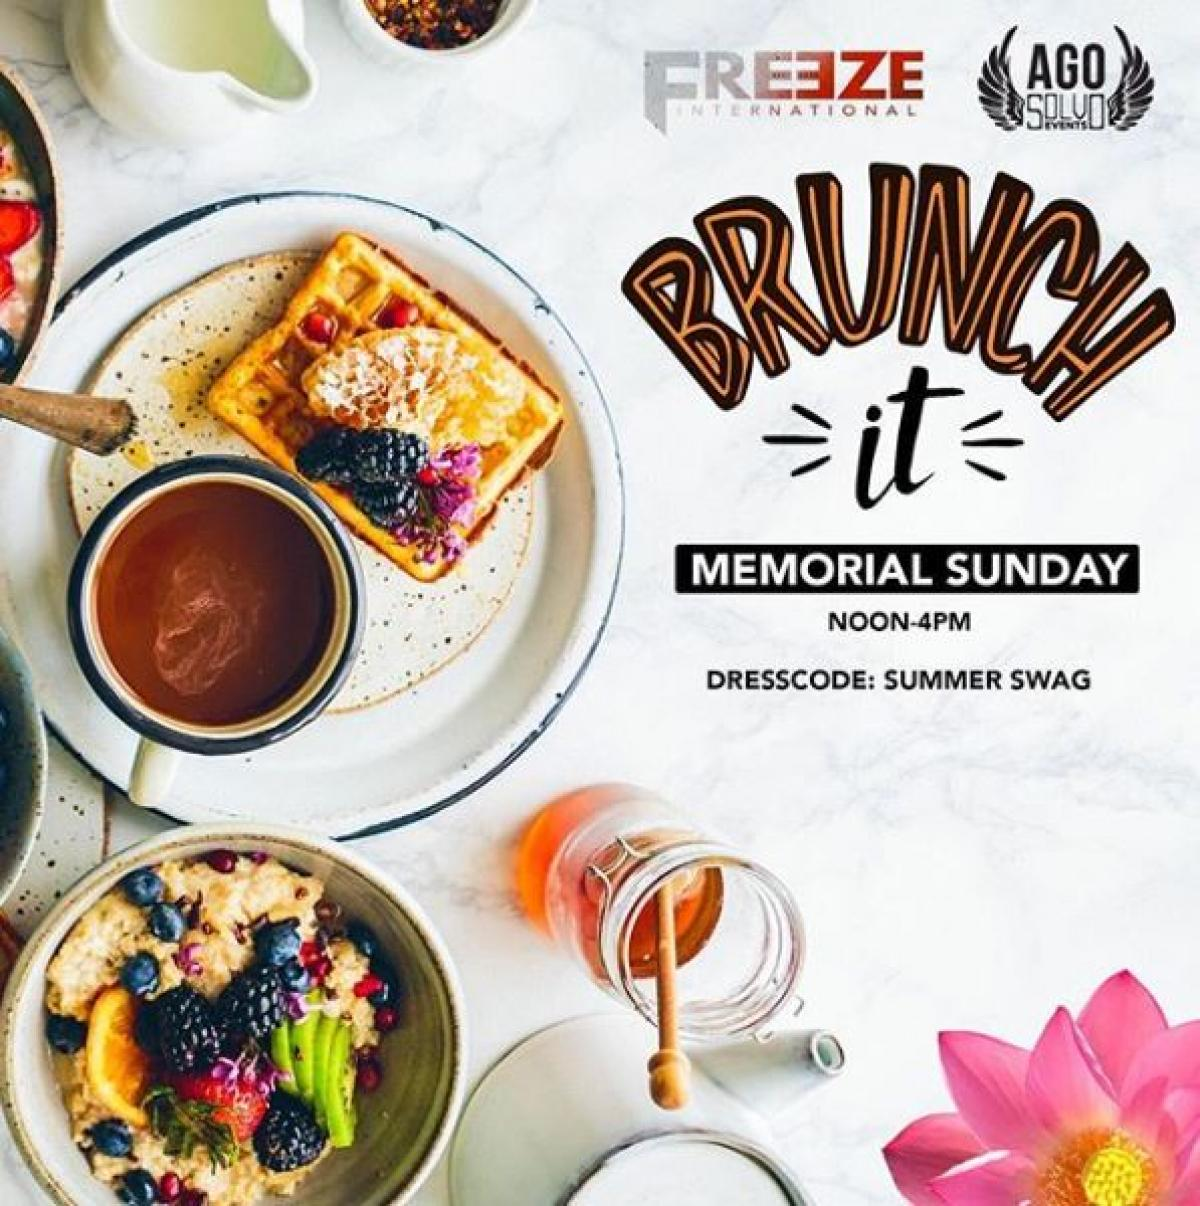 Brunch It flyer or graphic.